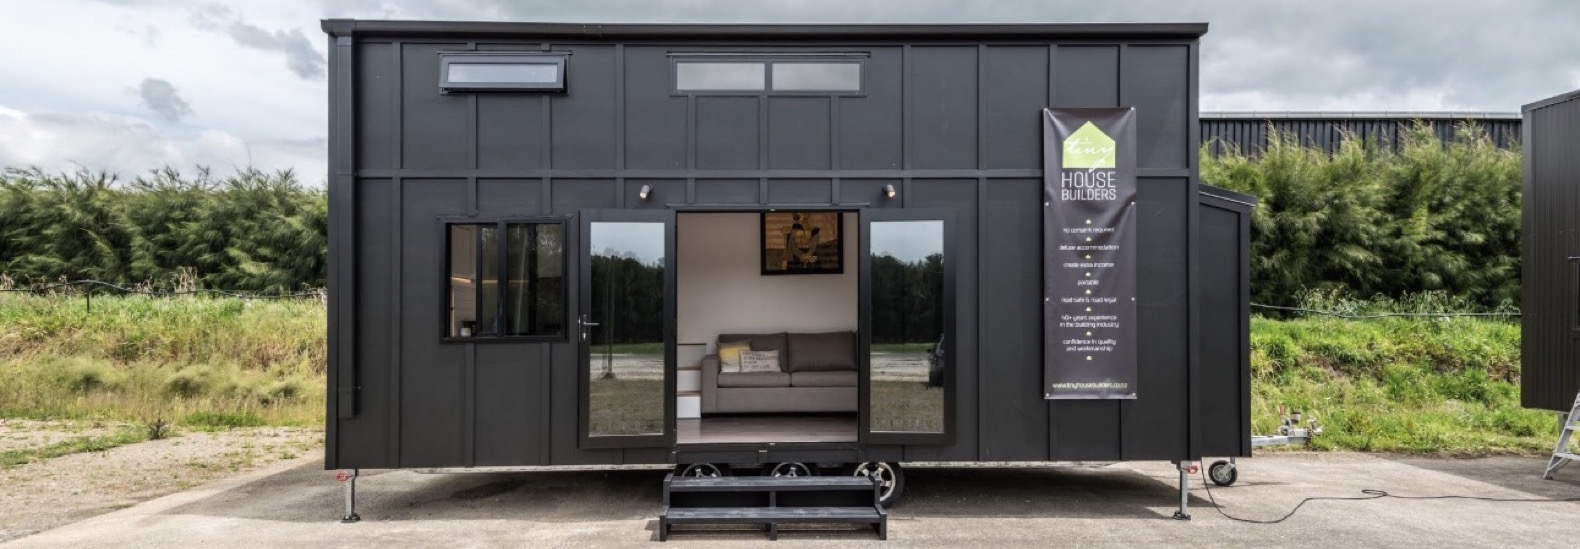 The luxurious Pohutukawa tiny home on wheels lets you live large in style